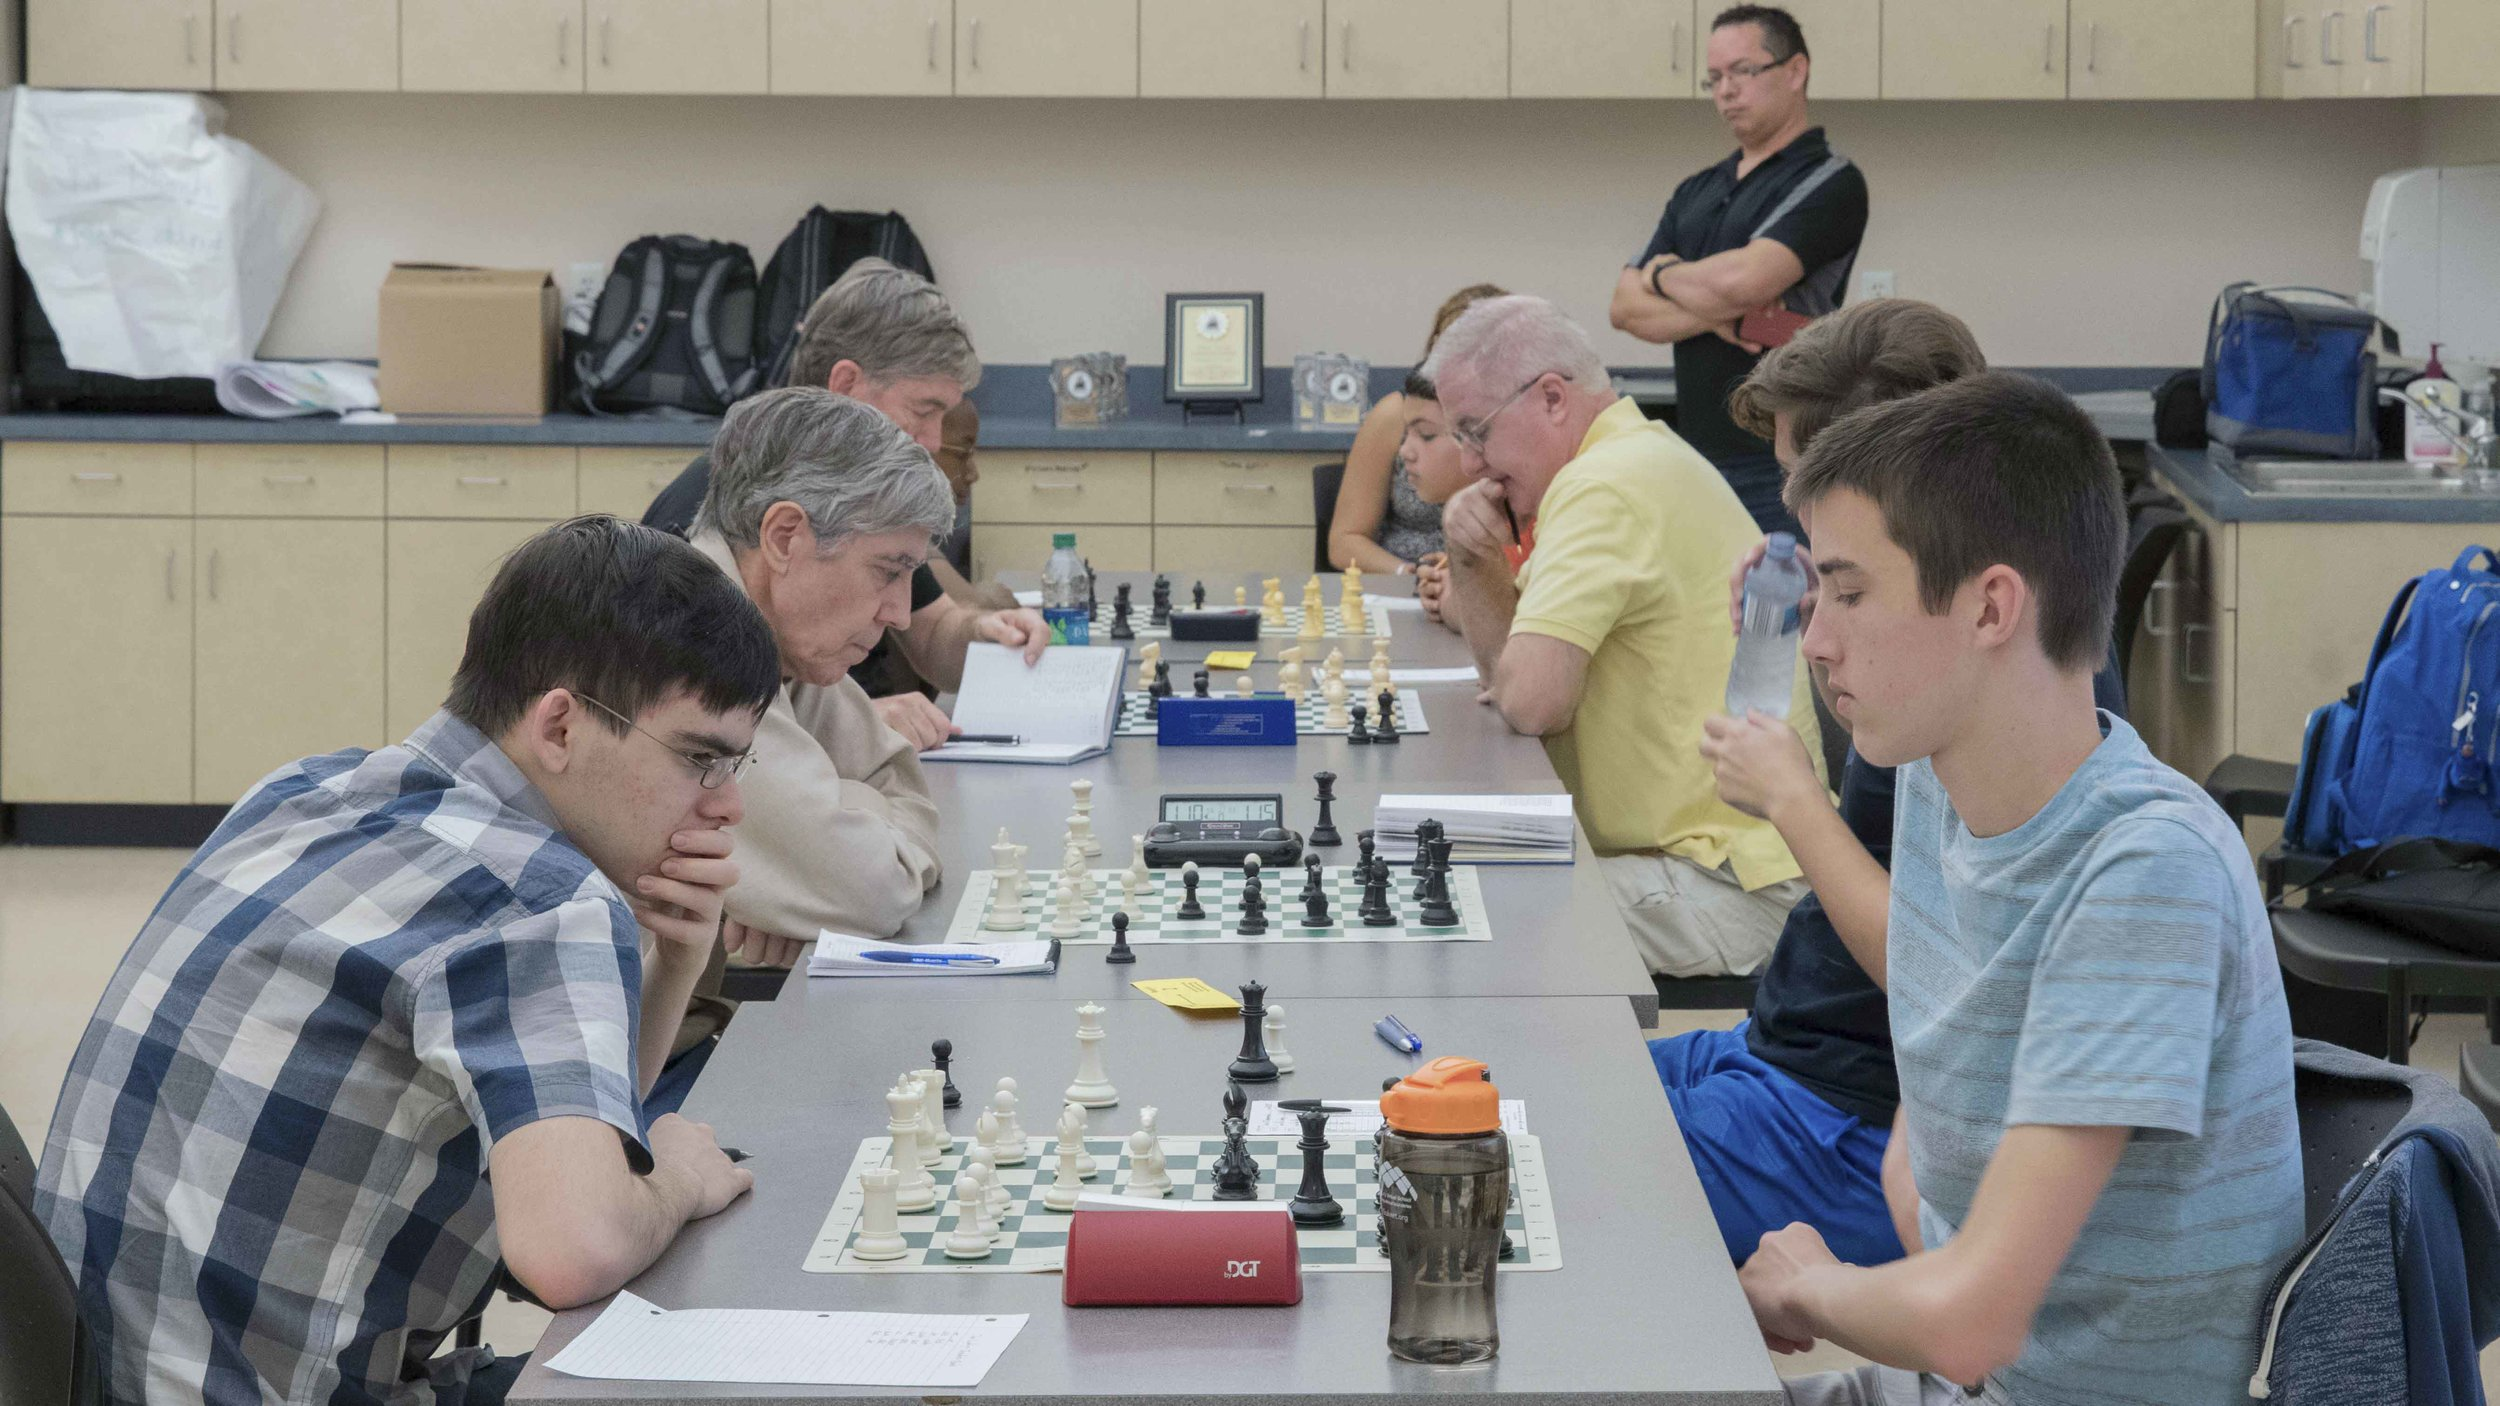 Round 4, Board One, John Ludwig (2463) (L) versus Theo Slade (2177) (R) during the CFCC Club Championship hosted by the UCF Chess Club.